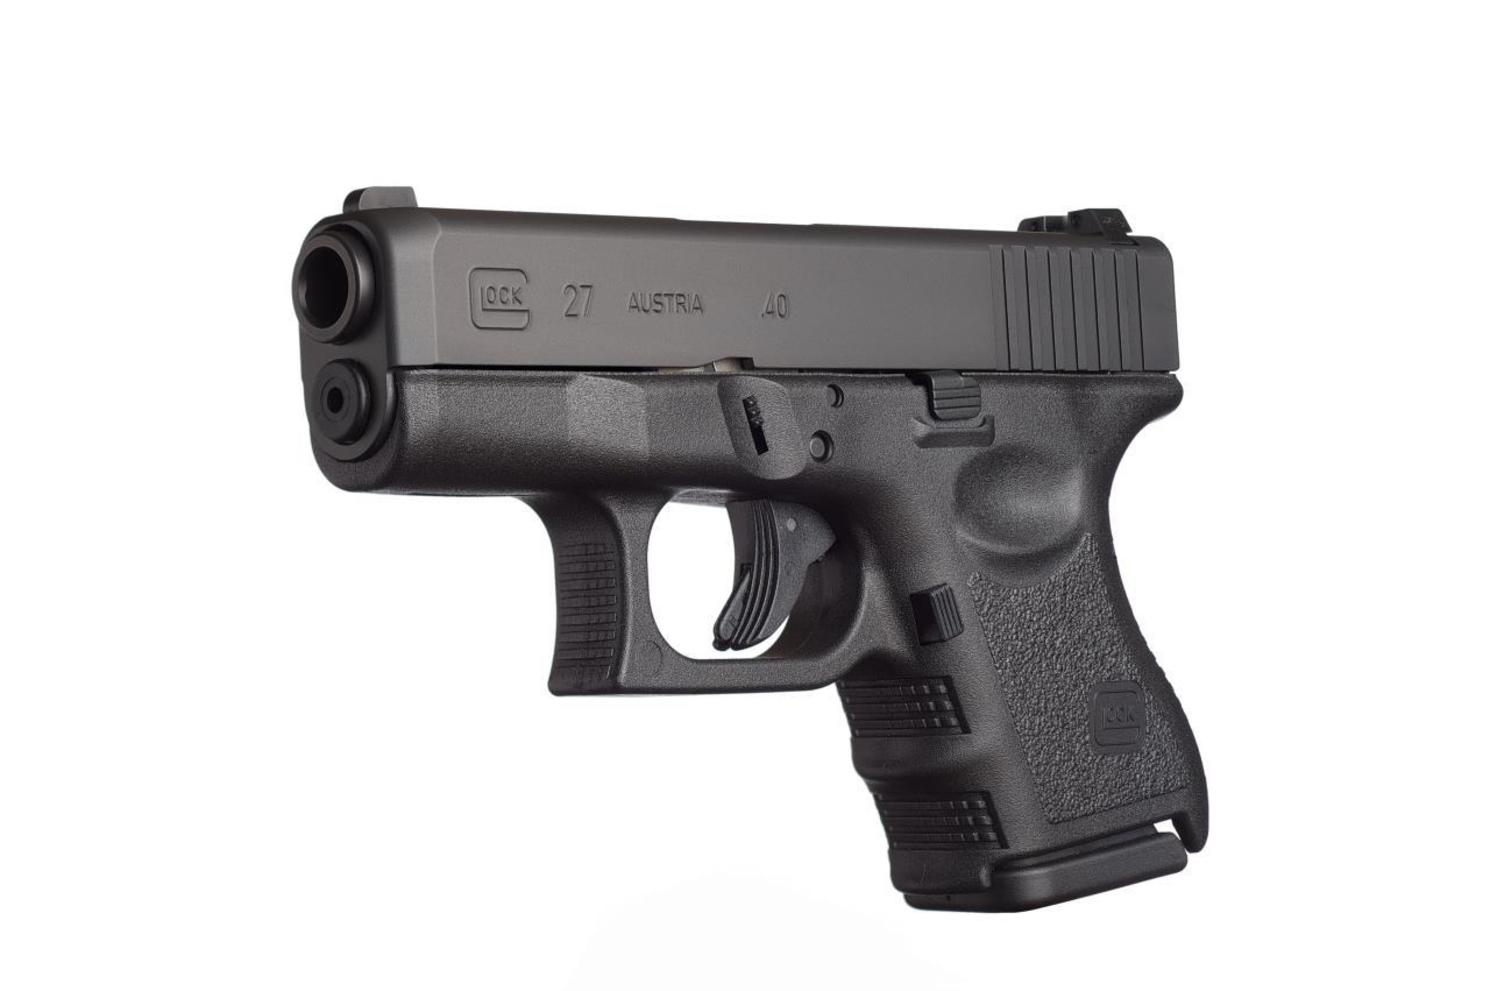 Why the Glock 27 Gun Is Truly Something Special